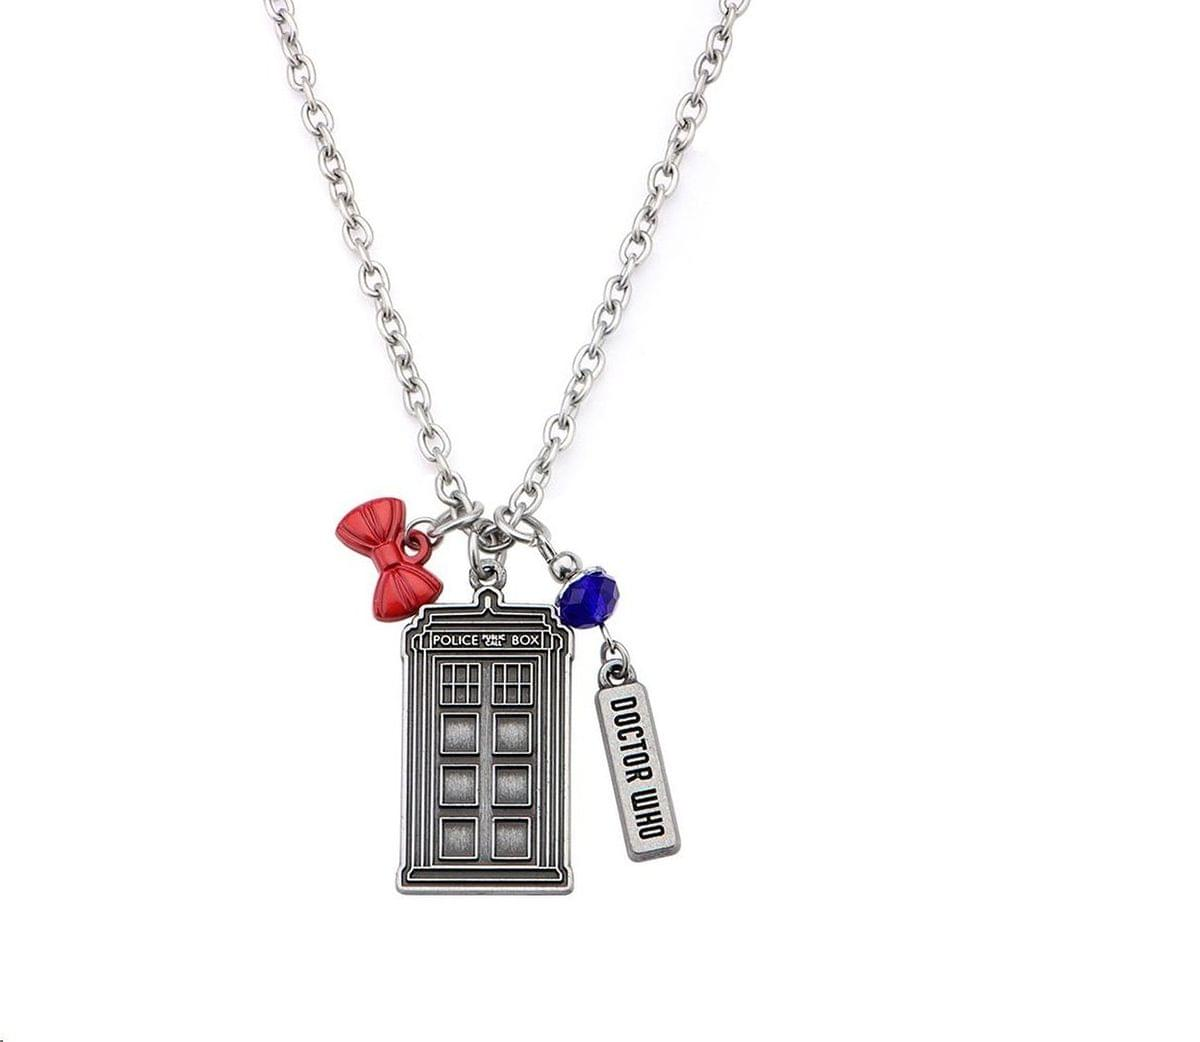 Doctor Who Stainless Steel Multi-Charm TARDIS Necklace